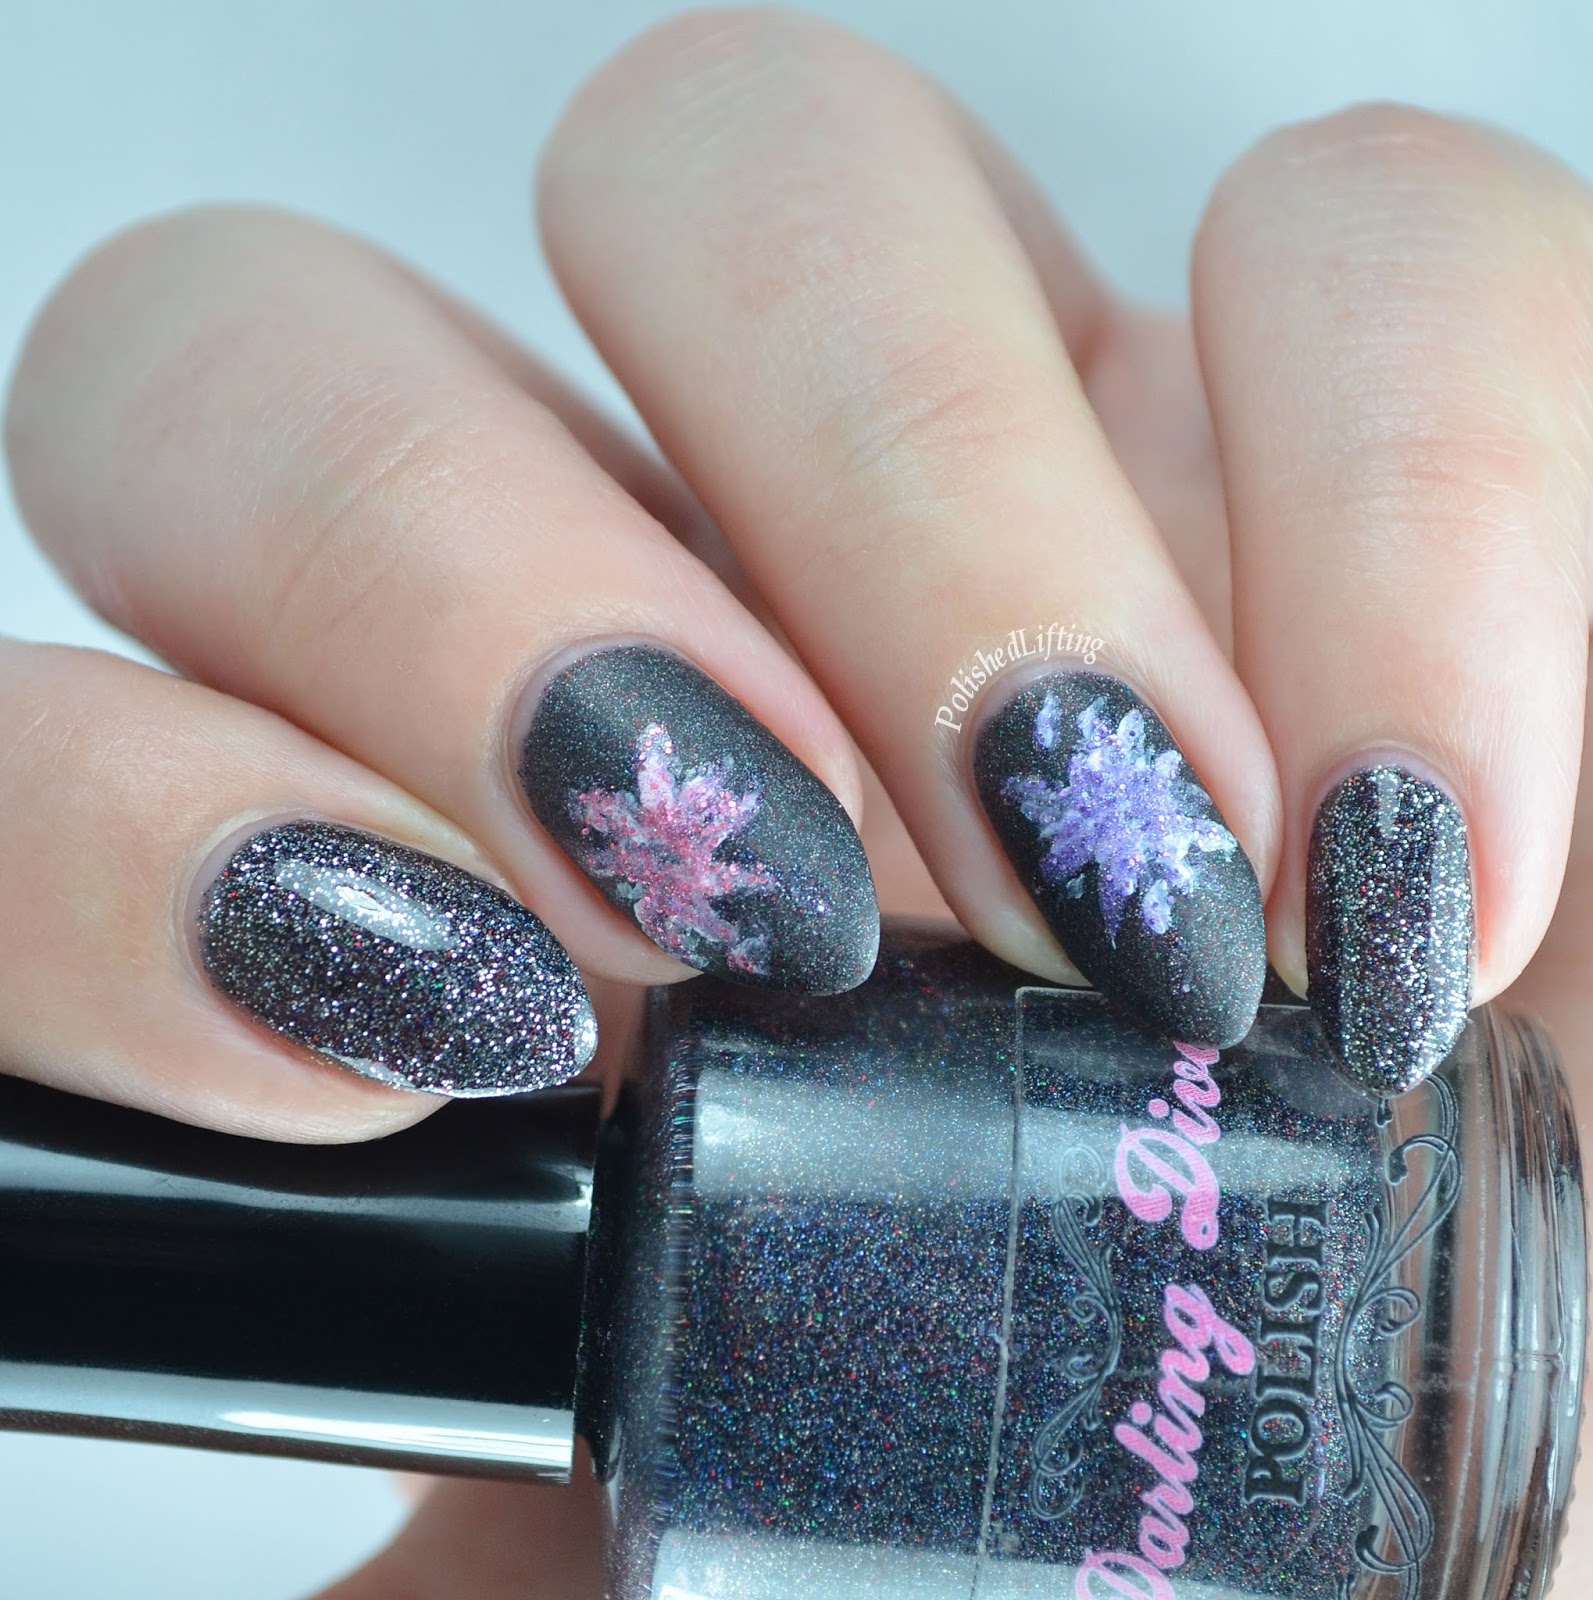 Polished Lifting: New Years Eve Nail Art and A Year in Review